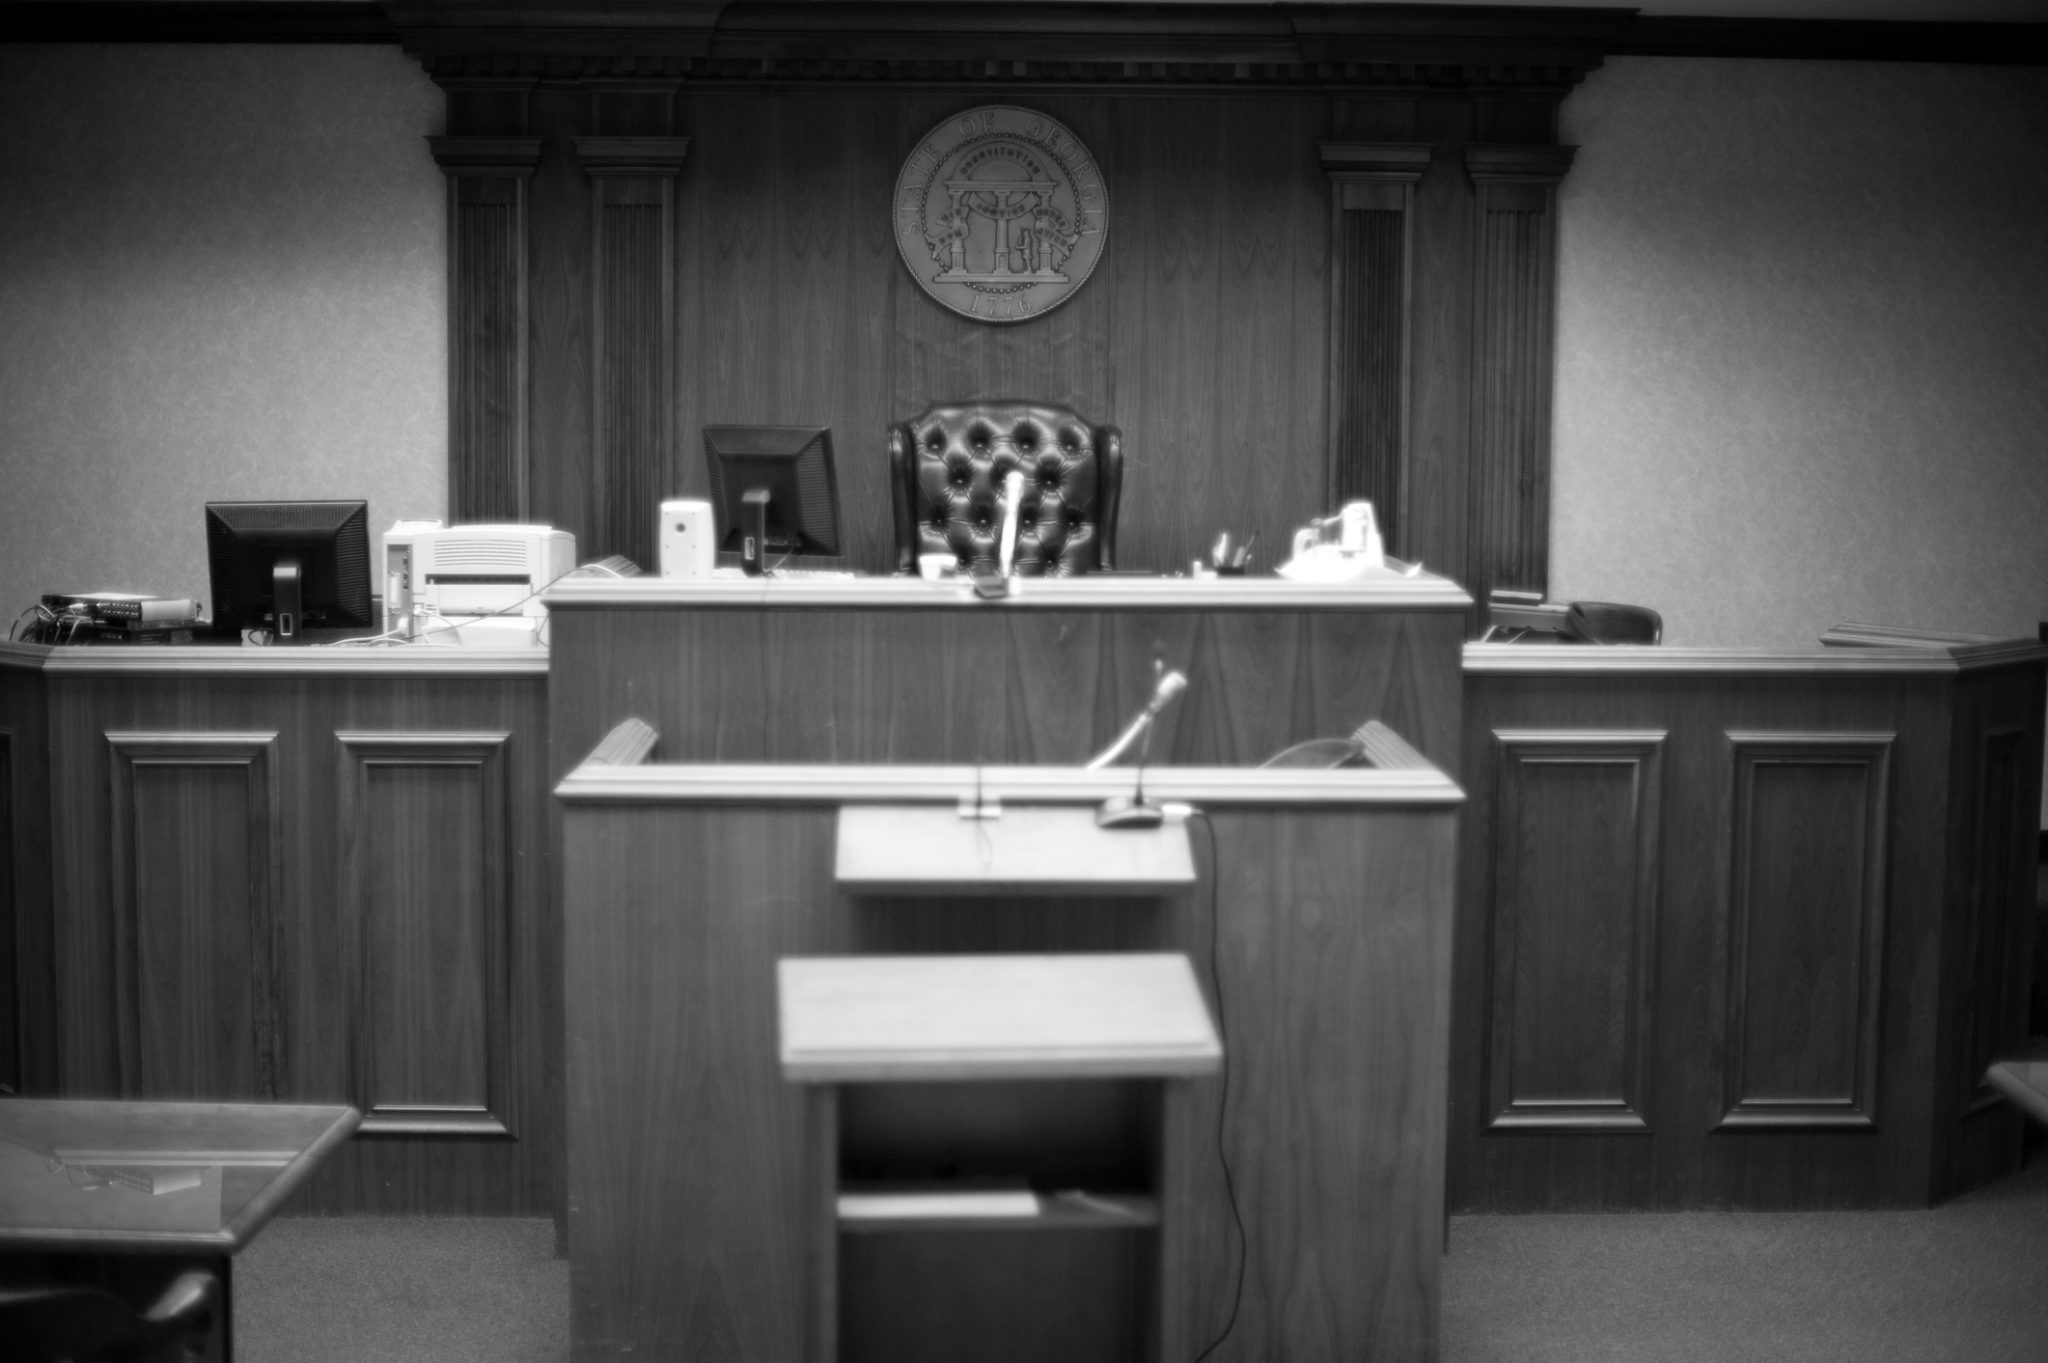 news crime pleaded guilty aggravated sexual assault child wants expunge plea